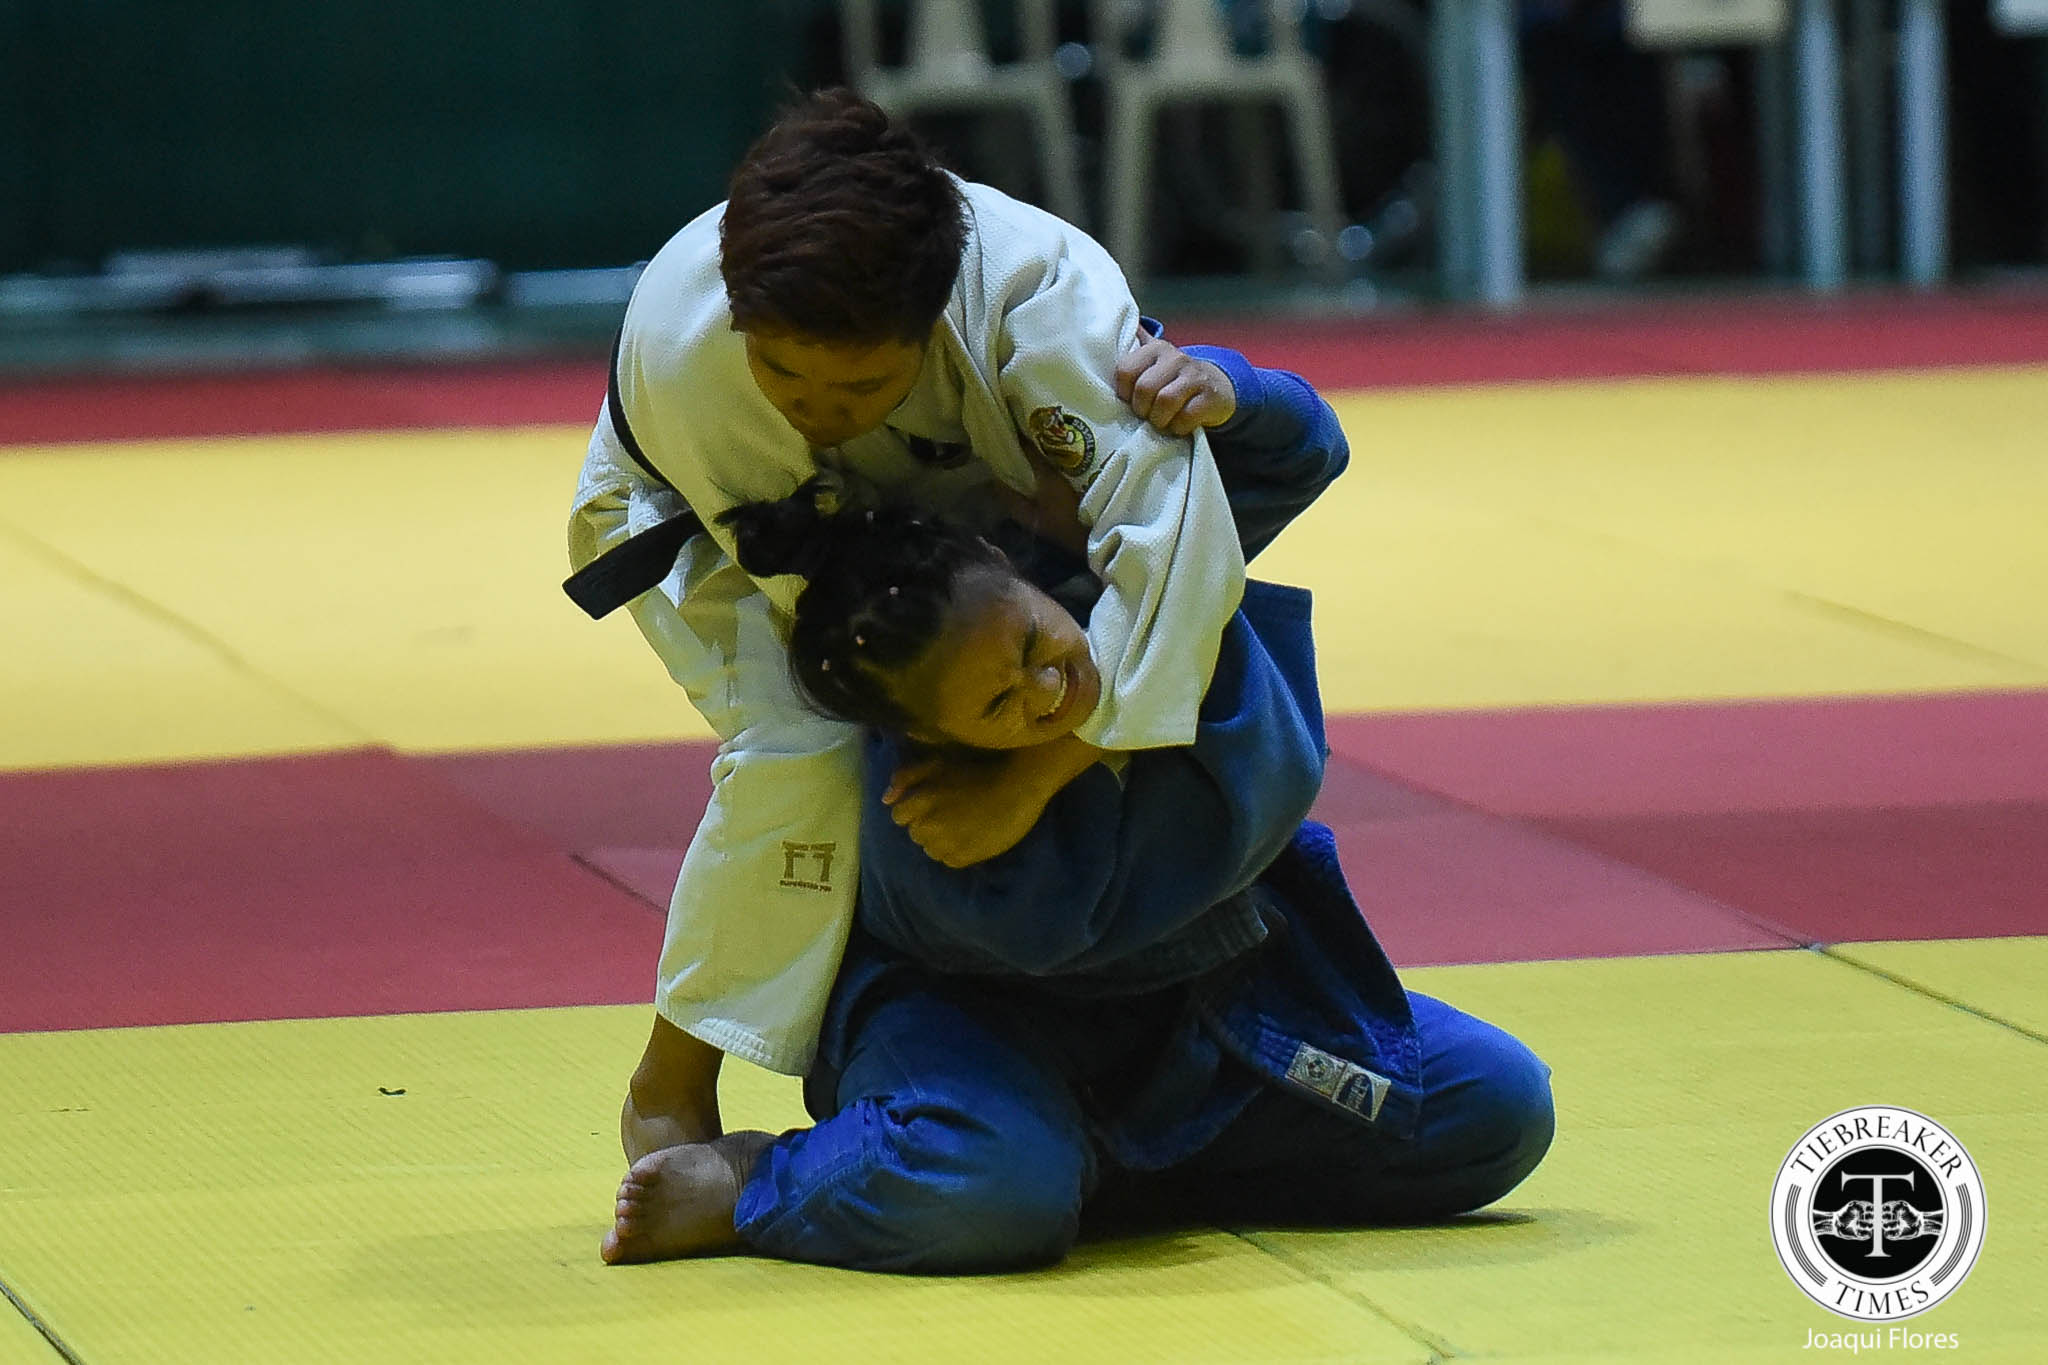 Tiebreaker Times Khrizzie Pabulayan captures 4th UAAP gold, leads UST to slim lead over UE ADMU DLSU Judo News UAAP UE UP UST  UST Women's Judo UP Women's Judo UE Women's Judo UAAP Season 81 Women's Judo UAAP Season 81 Shaira Batalla Khrizzie Pabulayan Jeanalane Lopez DLSU Women's Judo Charmea Quelino Ateneo Women's Judo